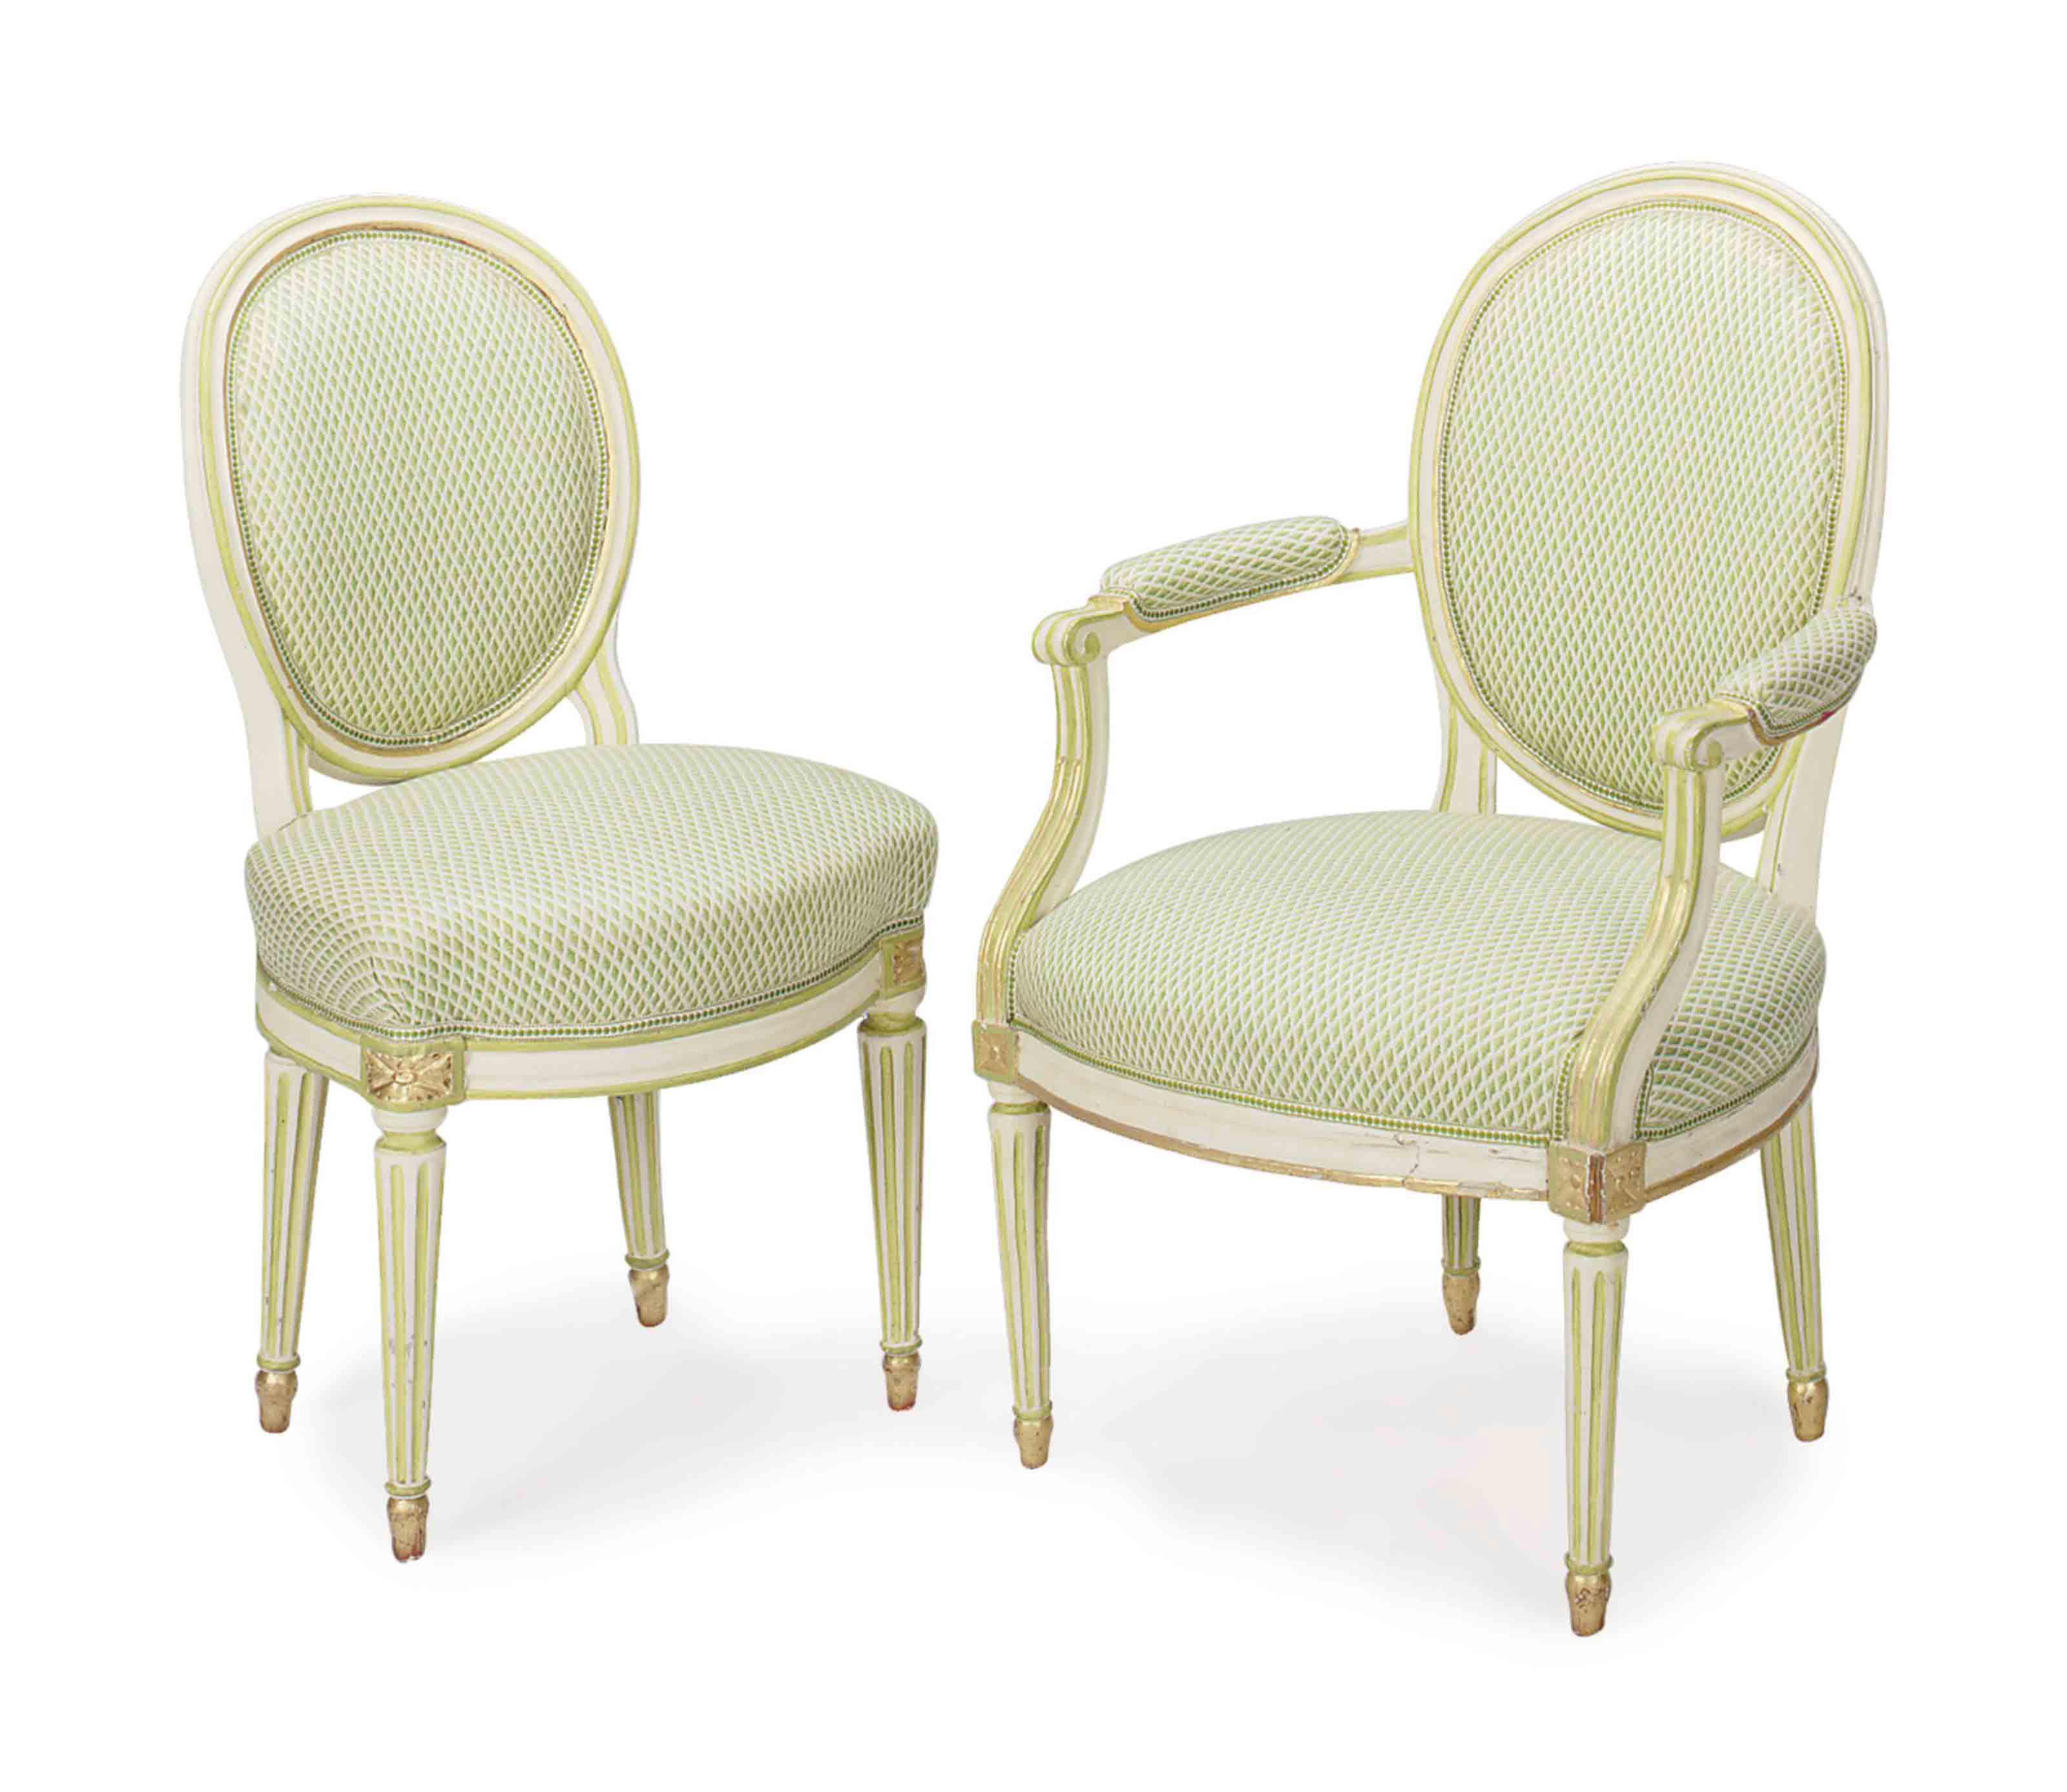 TWO PAIRS OF LOUIS XVI PARCEL-